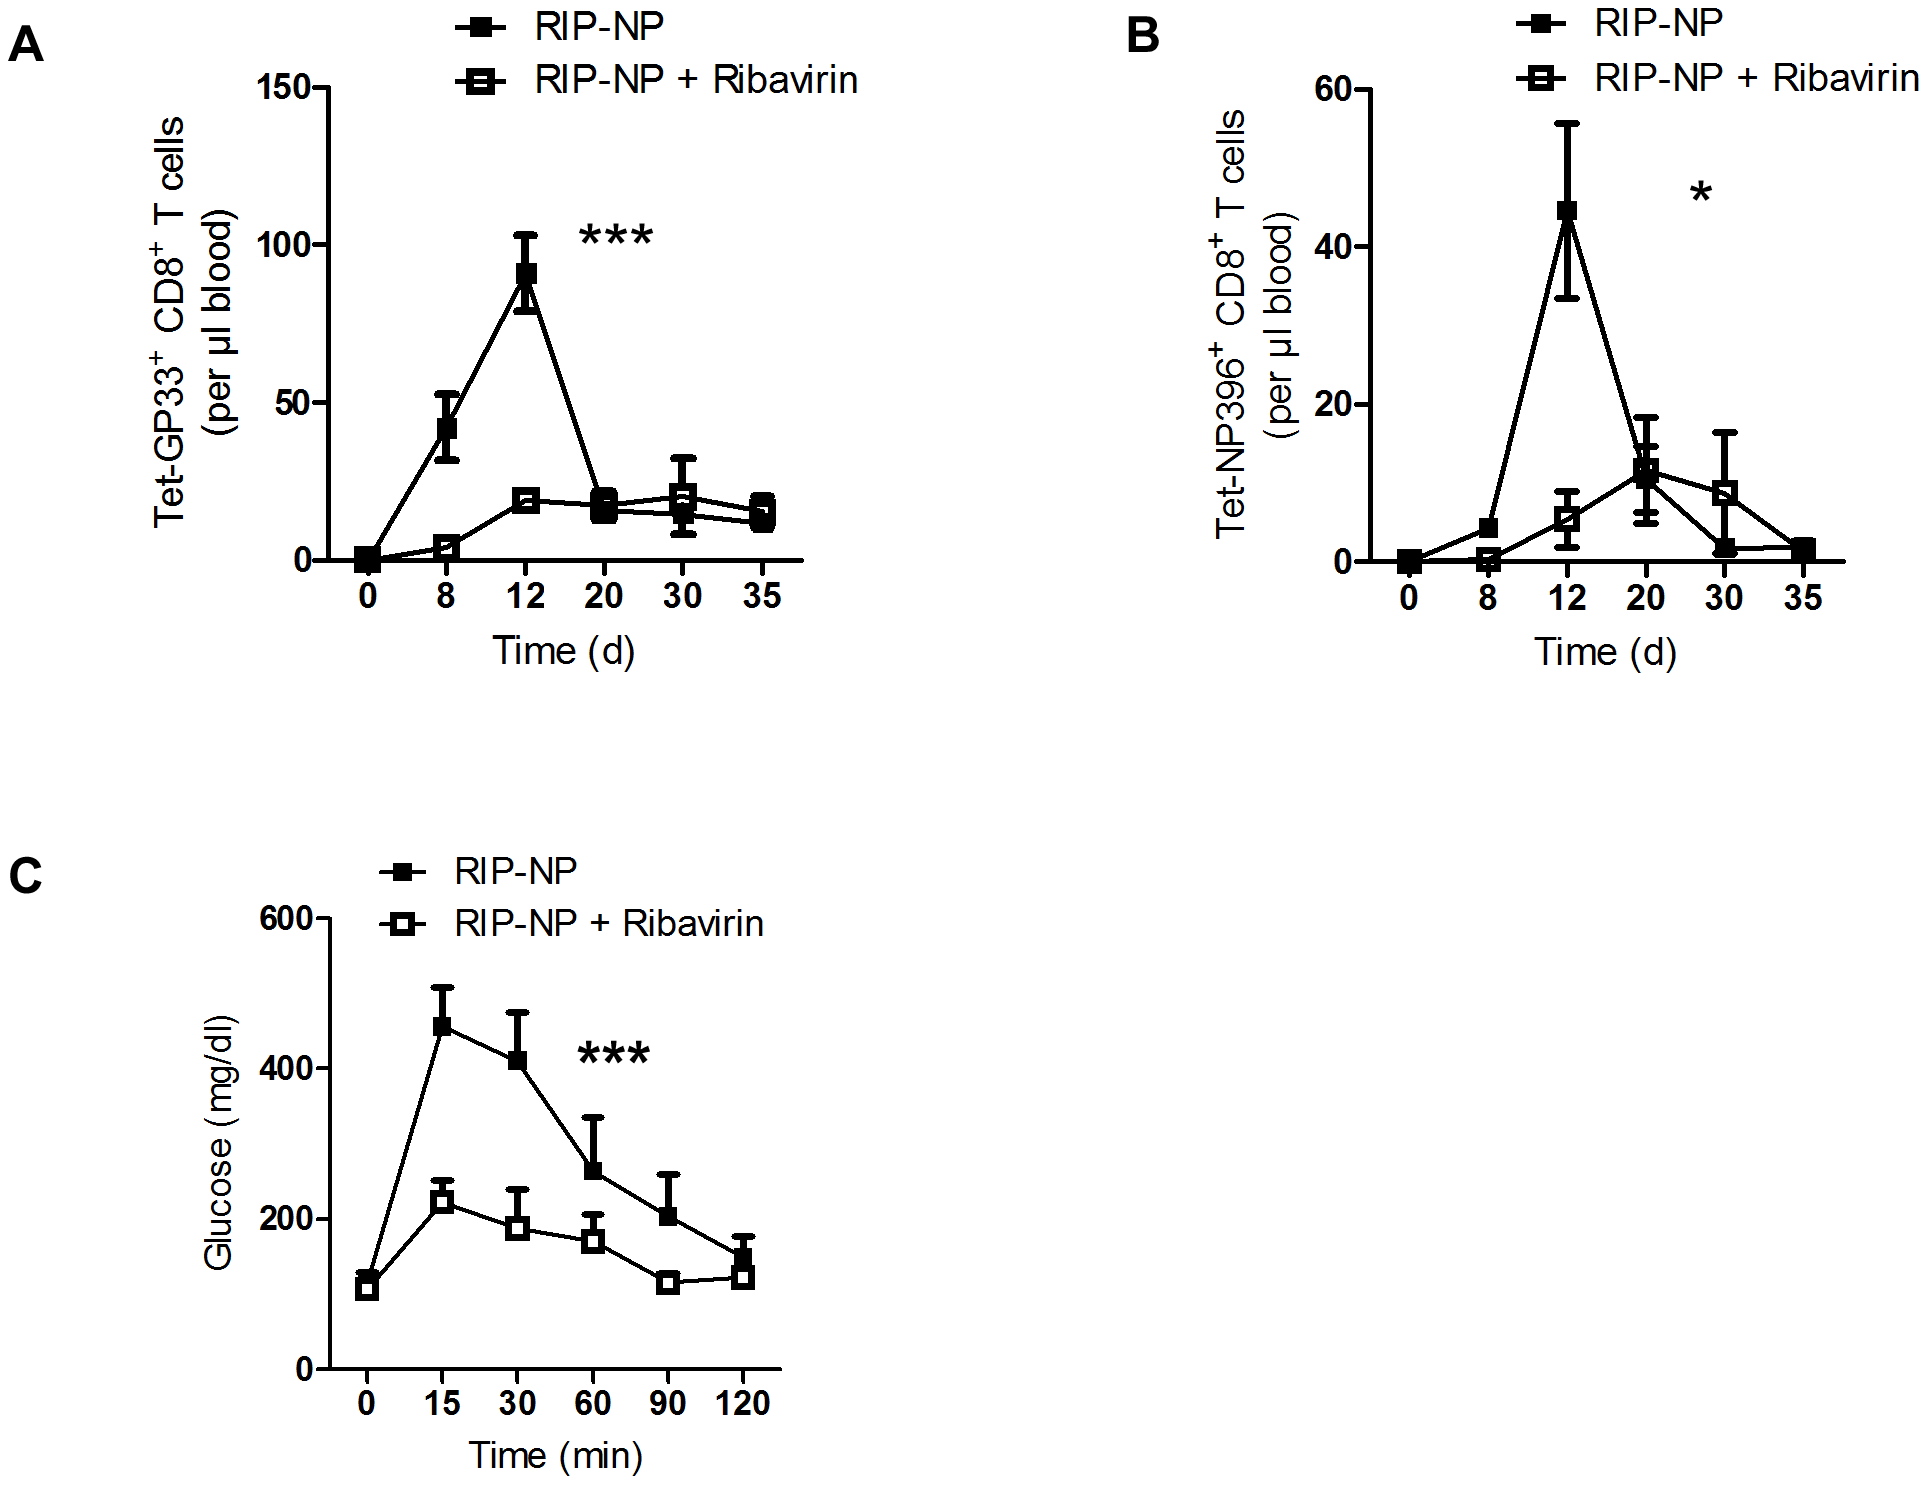 Ribavirin blunts auto-reactivity in RIP-NP diabetes model.